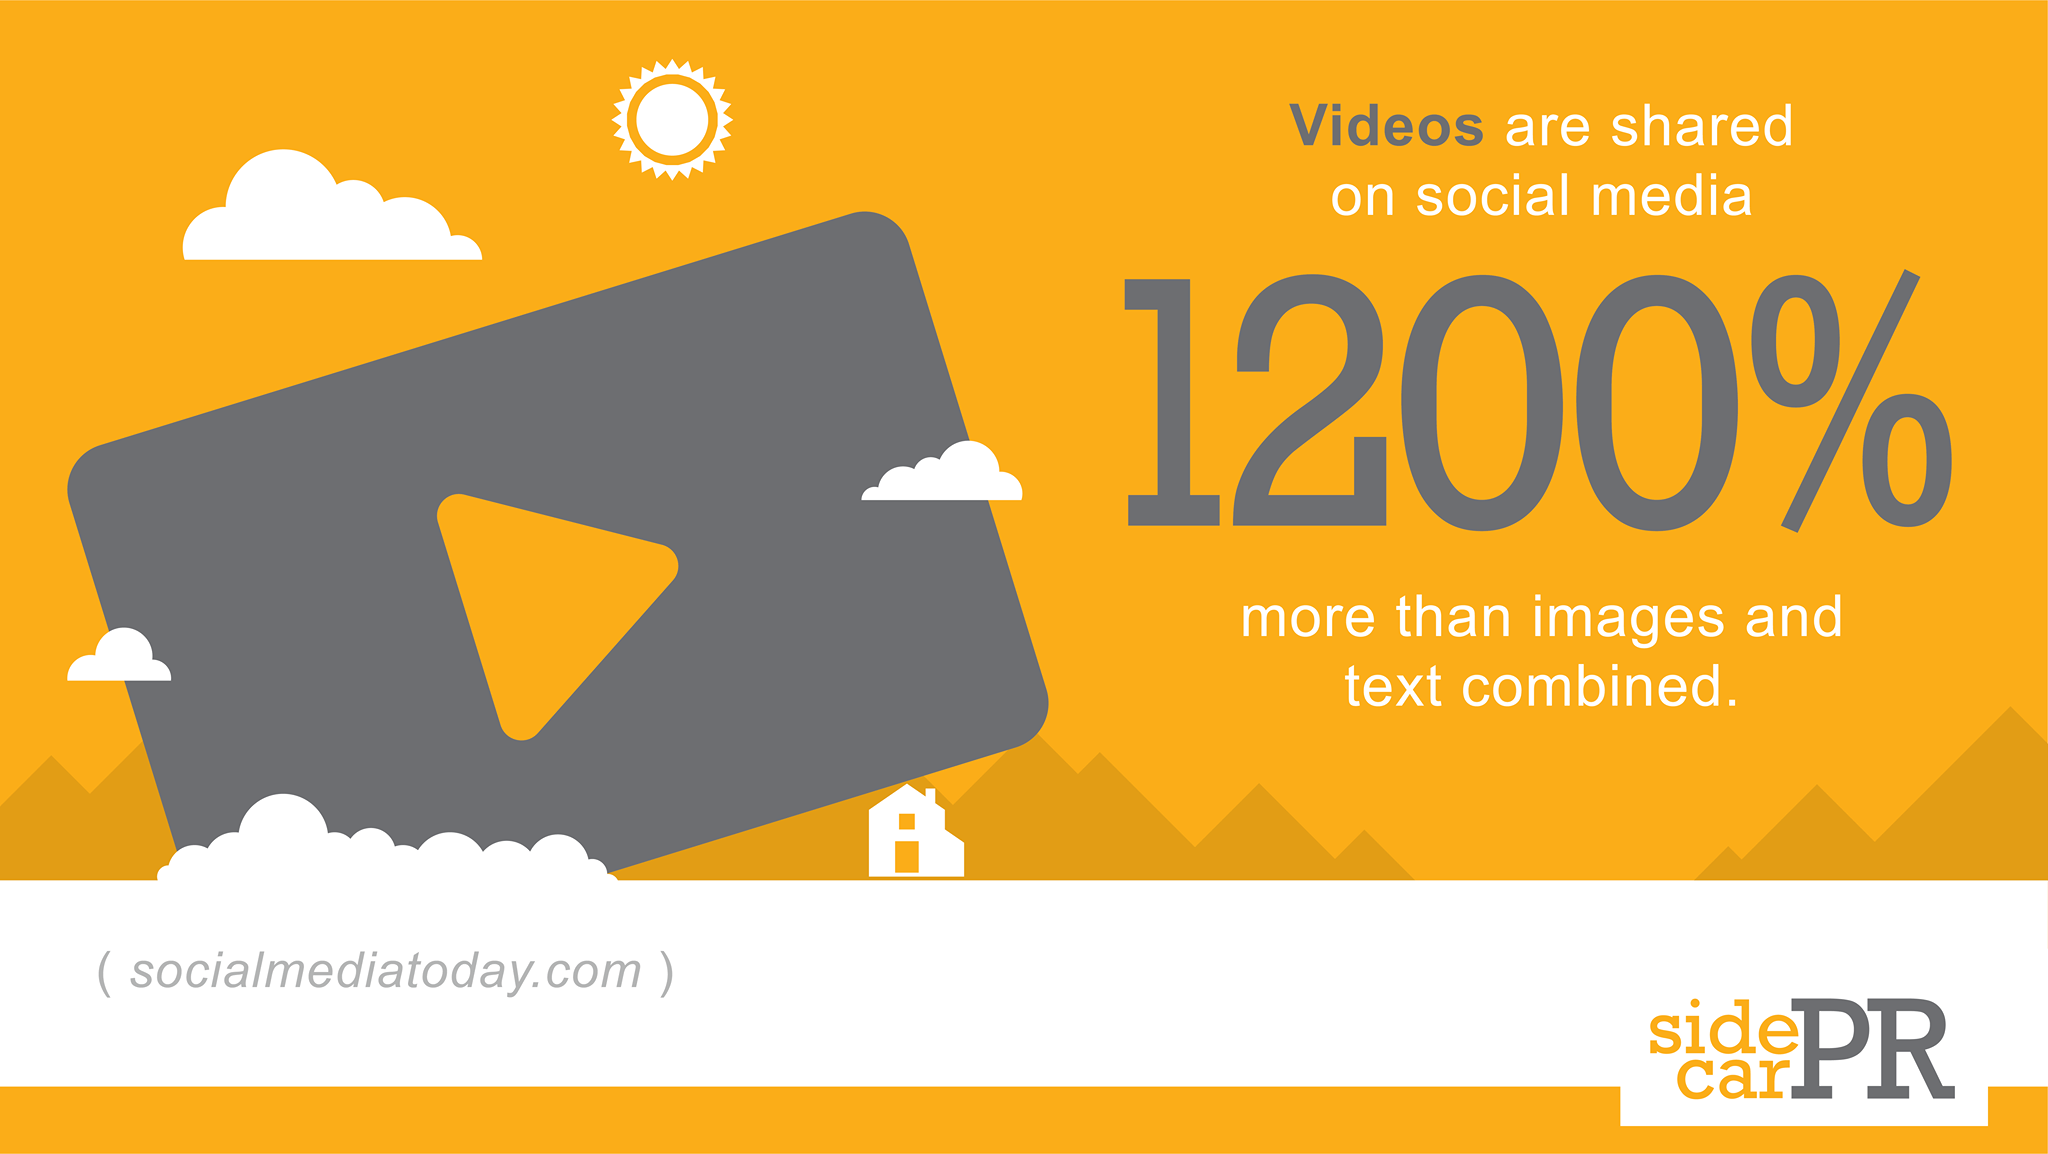 Videos on social media are shared 1200% more than images and text combined